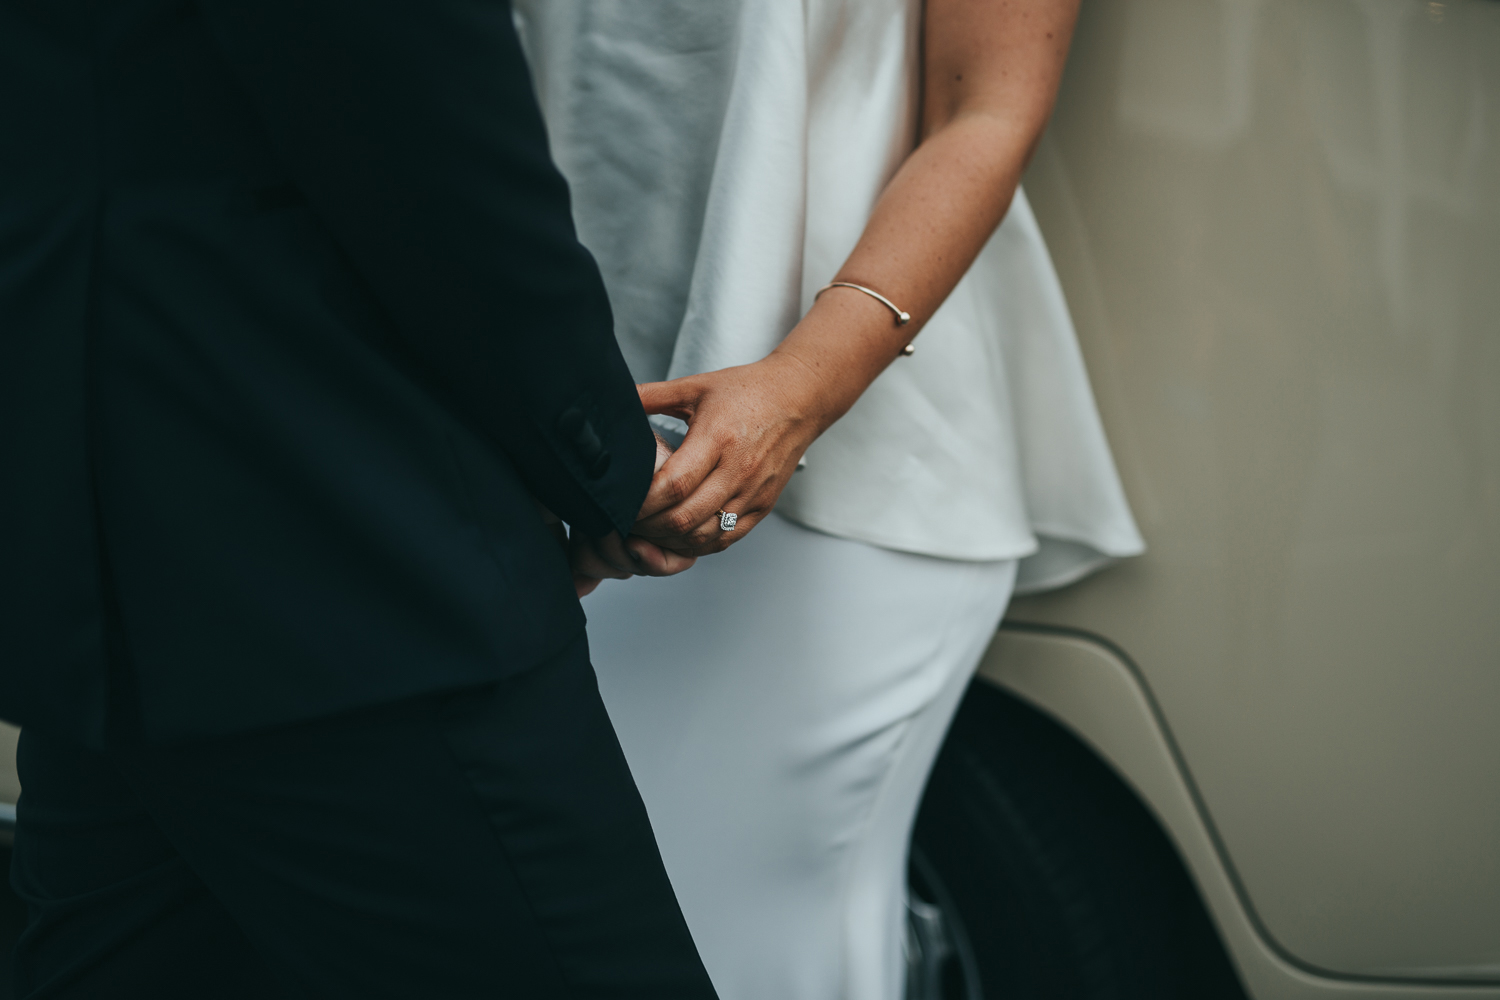 094-halcyon_house_byron_bay_wedding_photographer.jpg